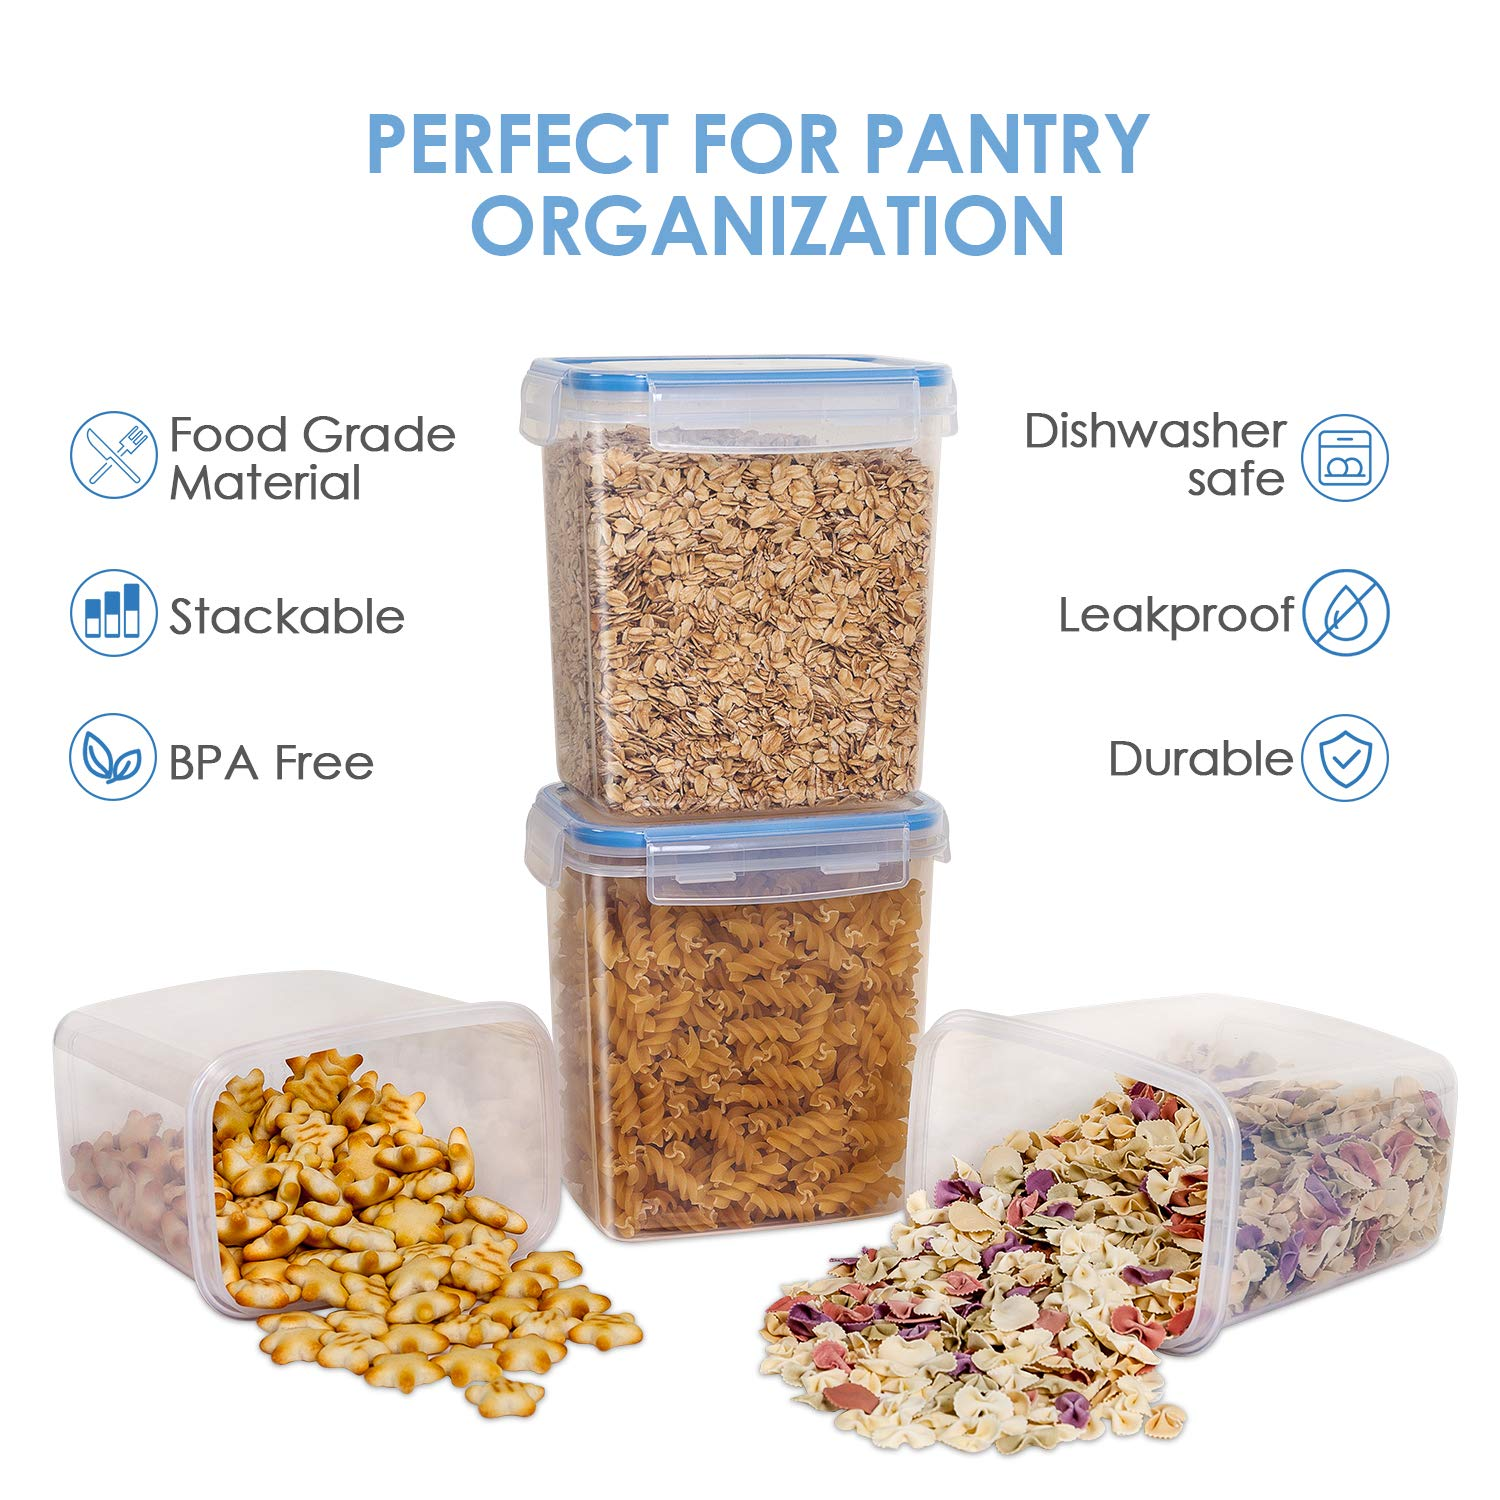 Vtopmart Airtight Food Storage Containers 12 Pieces - Plastic PBA Free Kitchen Pantry Storage Containers for Sugar,Flour and Baking Supplies - Dishwasher Safe - 24 Chalkboard Labels and 1 Marker by Vtopmart (Image #2)